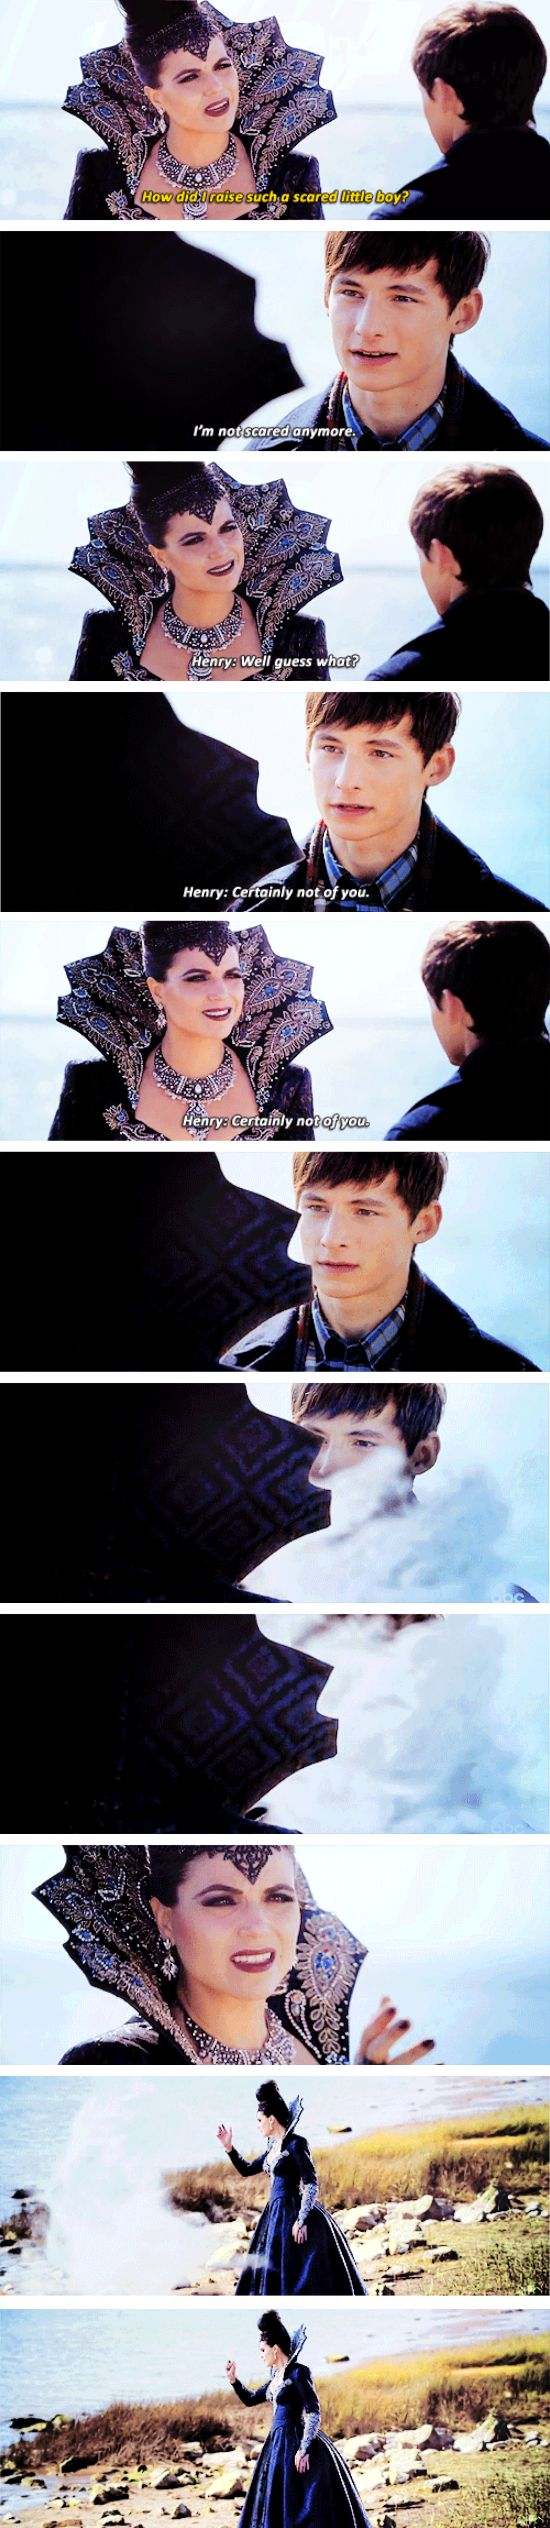 "Henry and Evil Queen - 6 * 8 ""I'll be your mirror"""